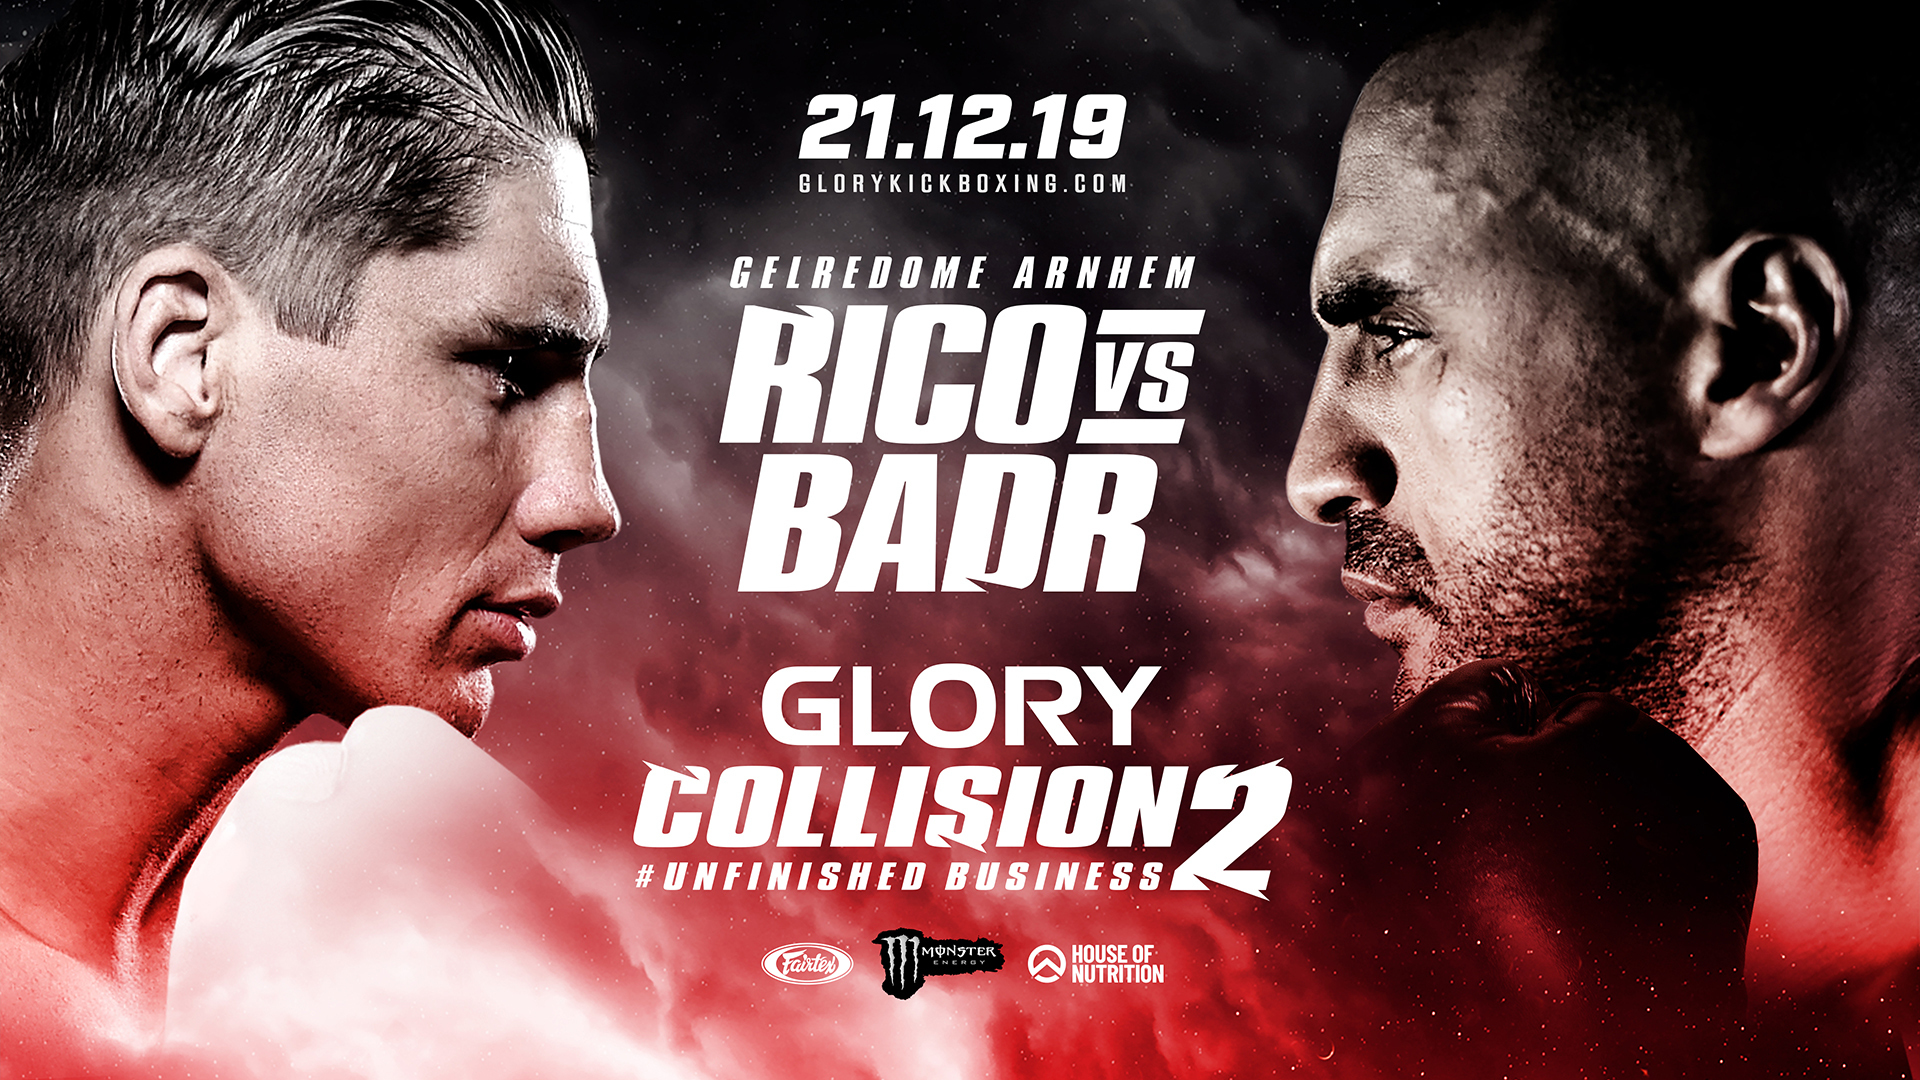 Tickets on sale next week for GLORY: COLLISION 2